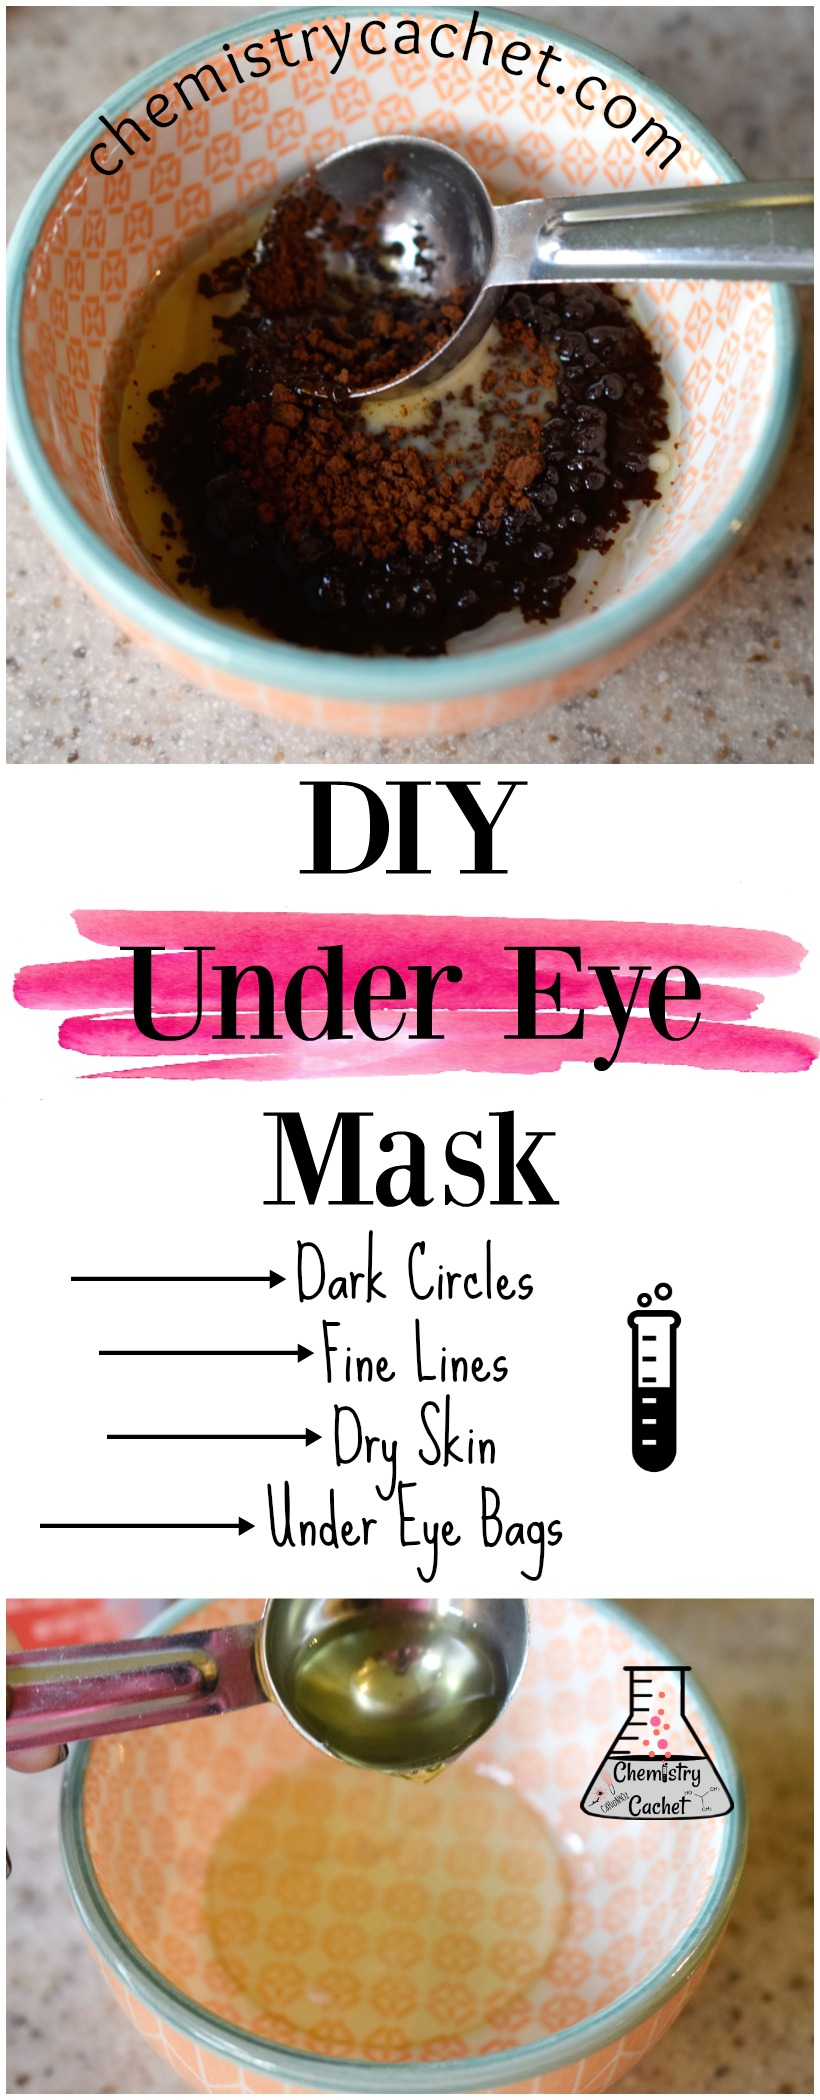 DIY Under Eye Mask for Dark Circles, Under Eye Bags, and ...